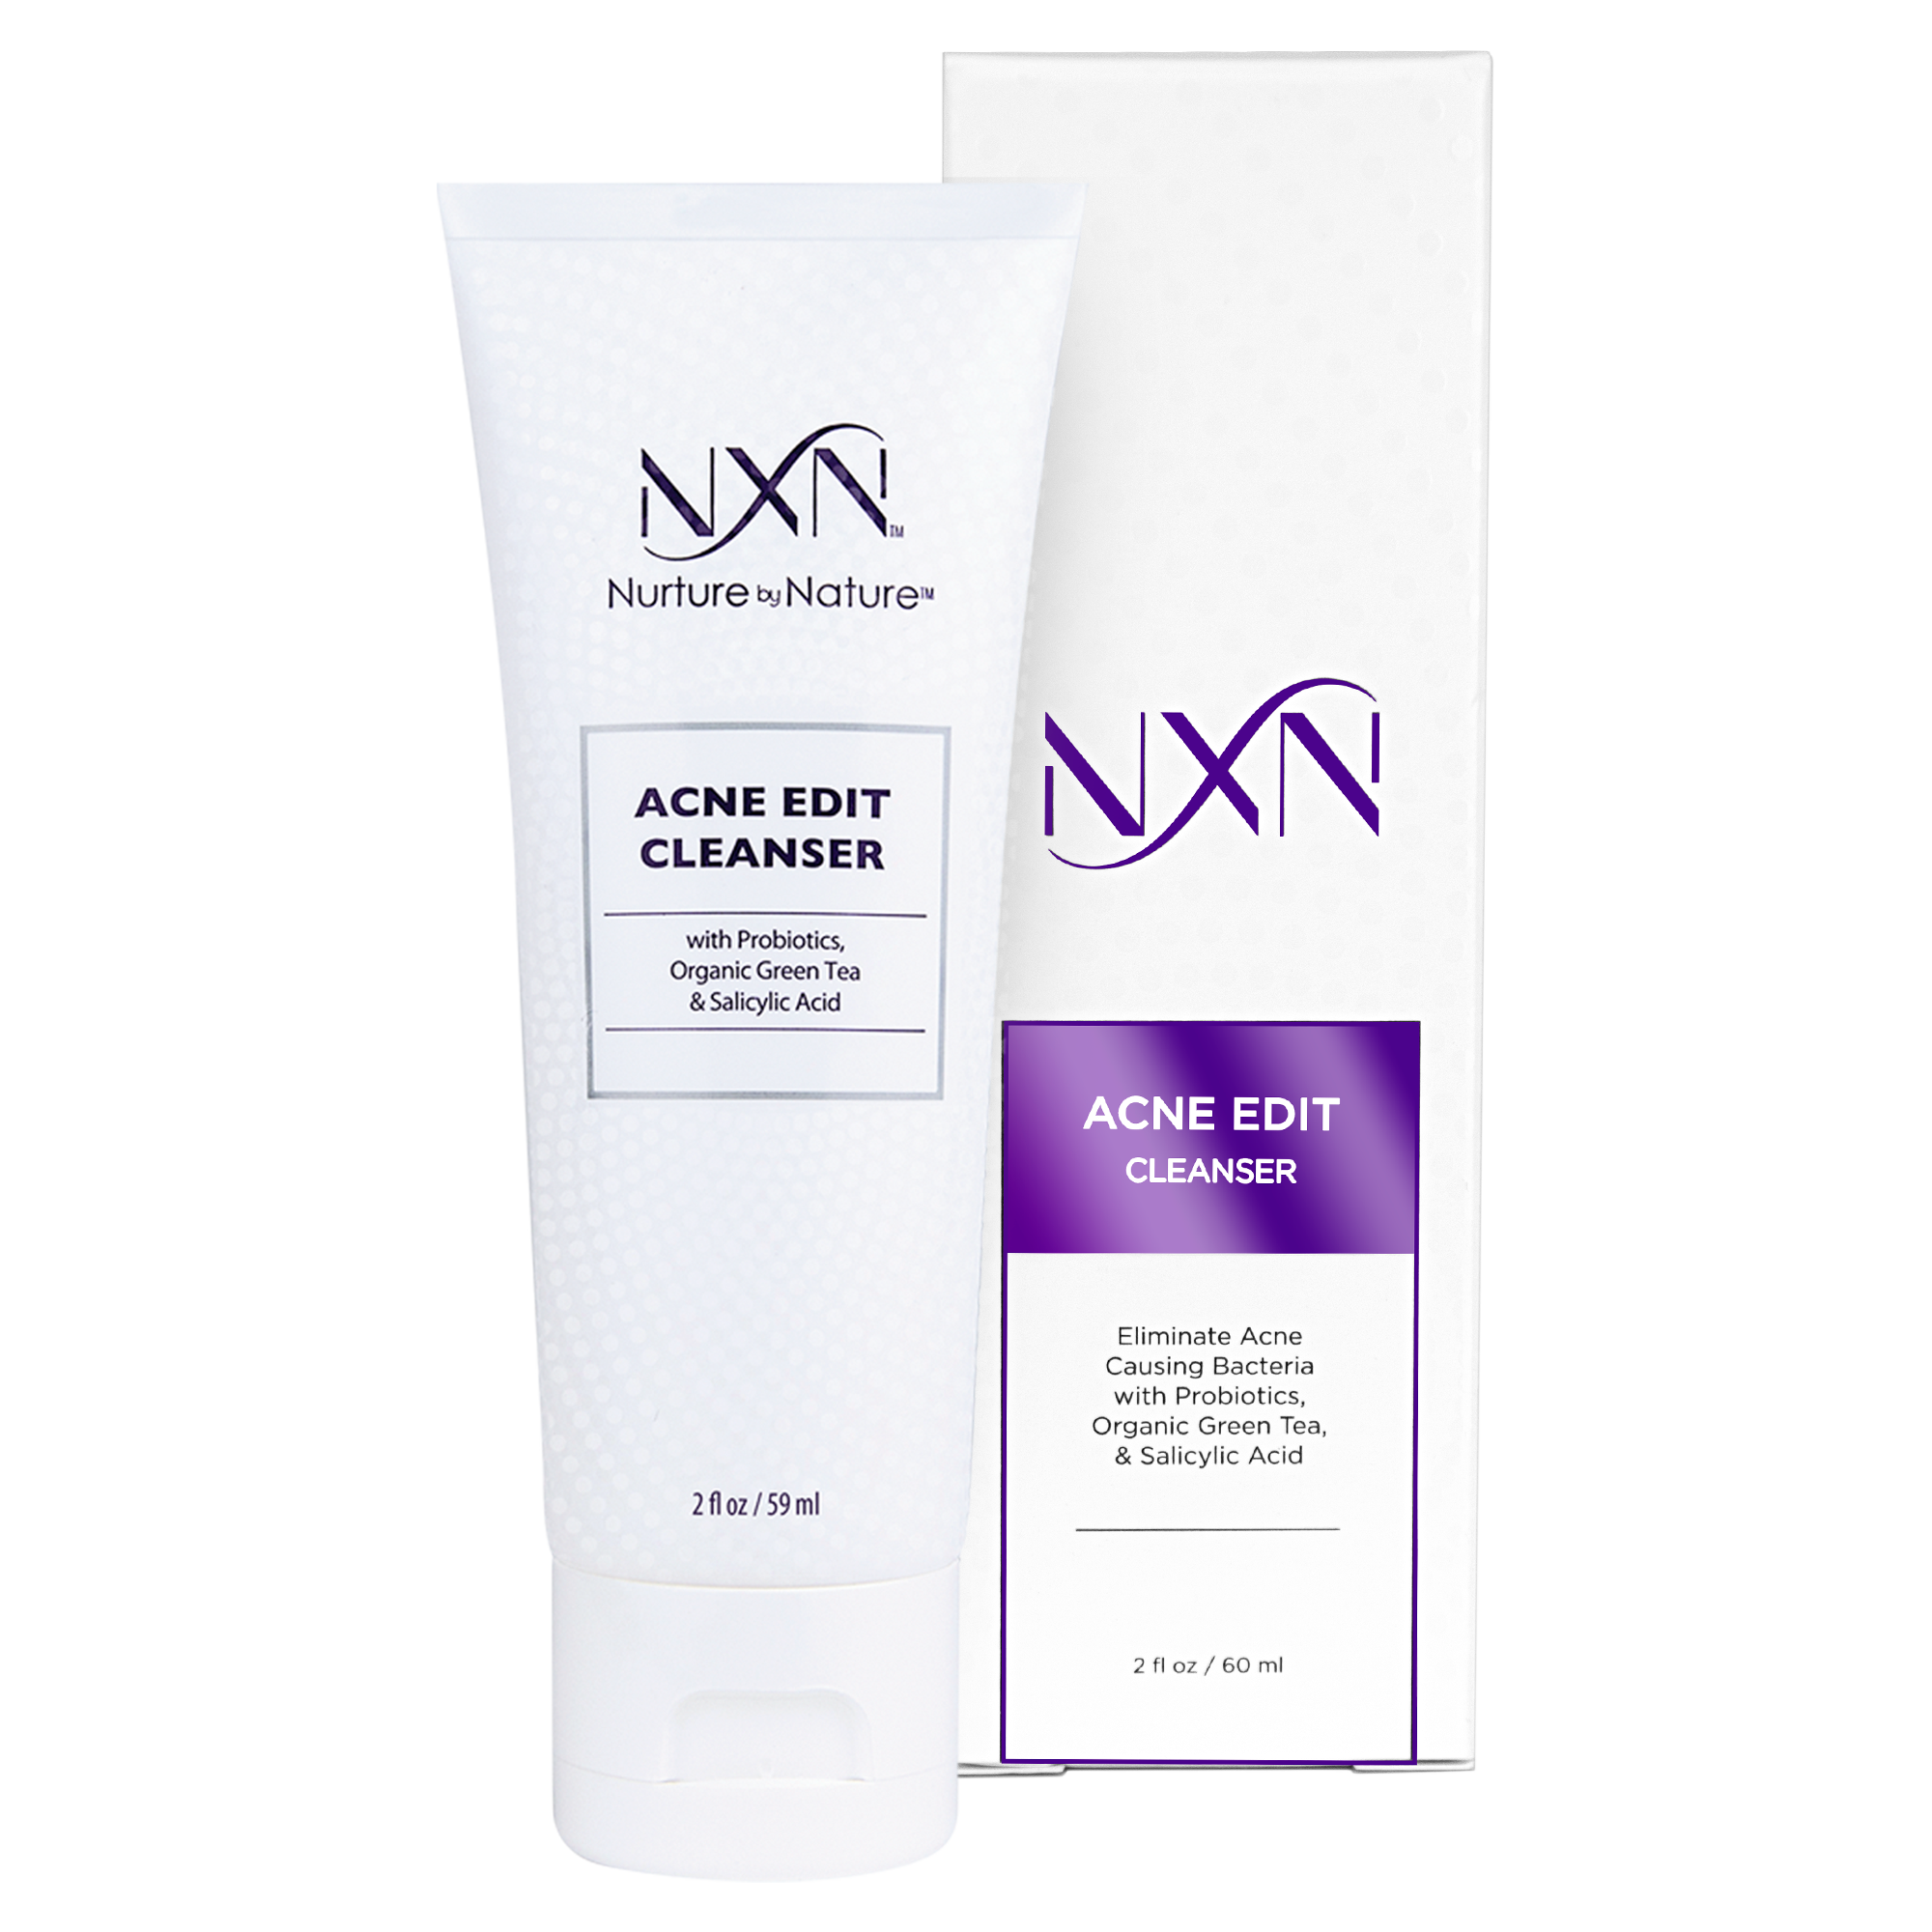 ACNE EDIT CLEANSER